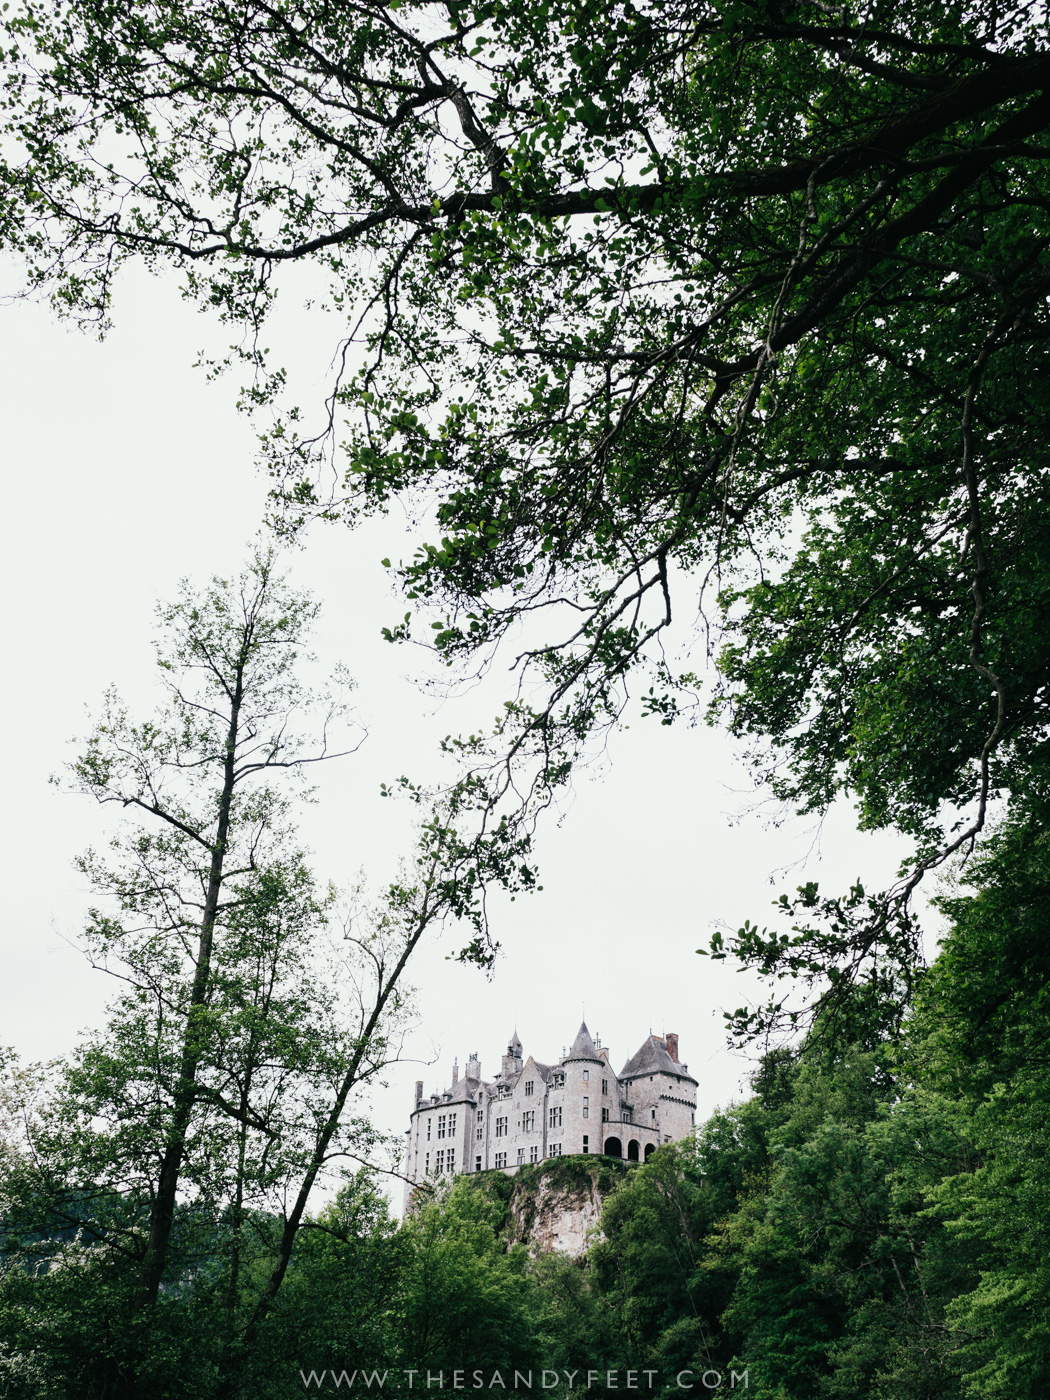 Kayaking the Lesse Valley past Walzin Castle | Top Things To Do In Belgium's Wallonia Region